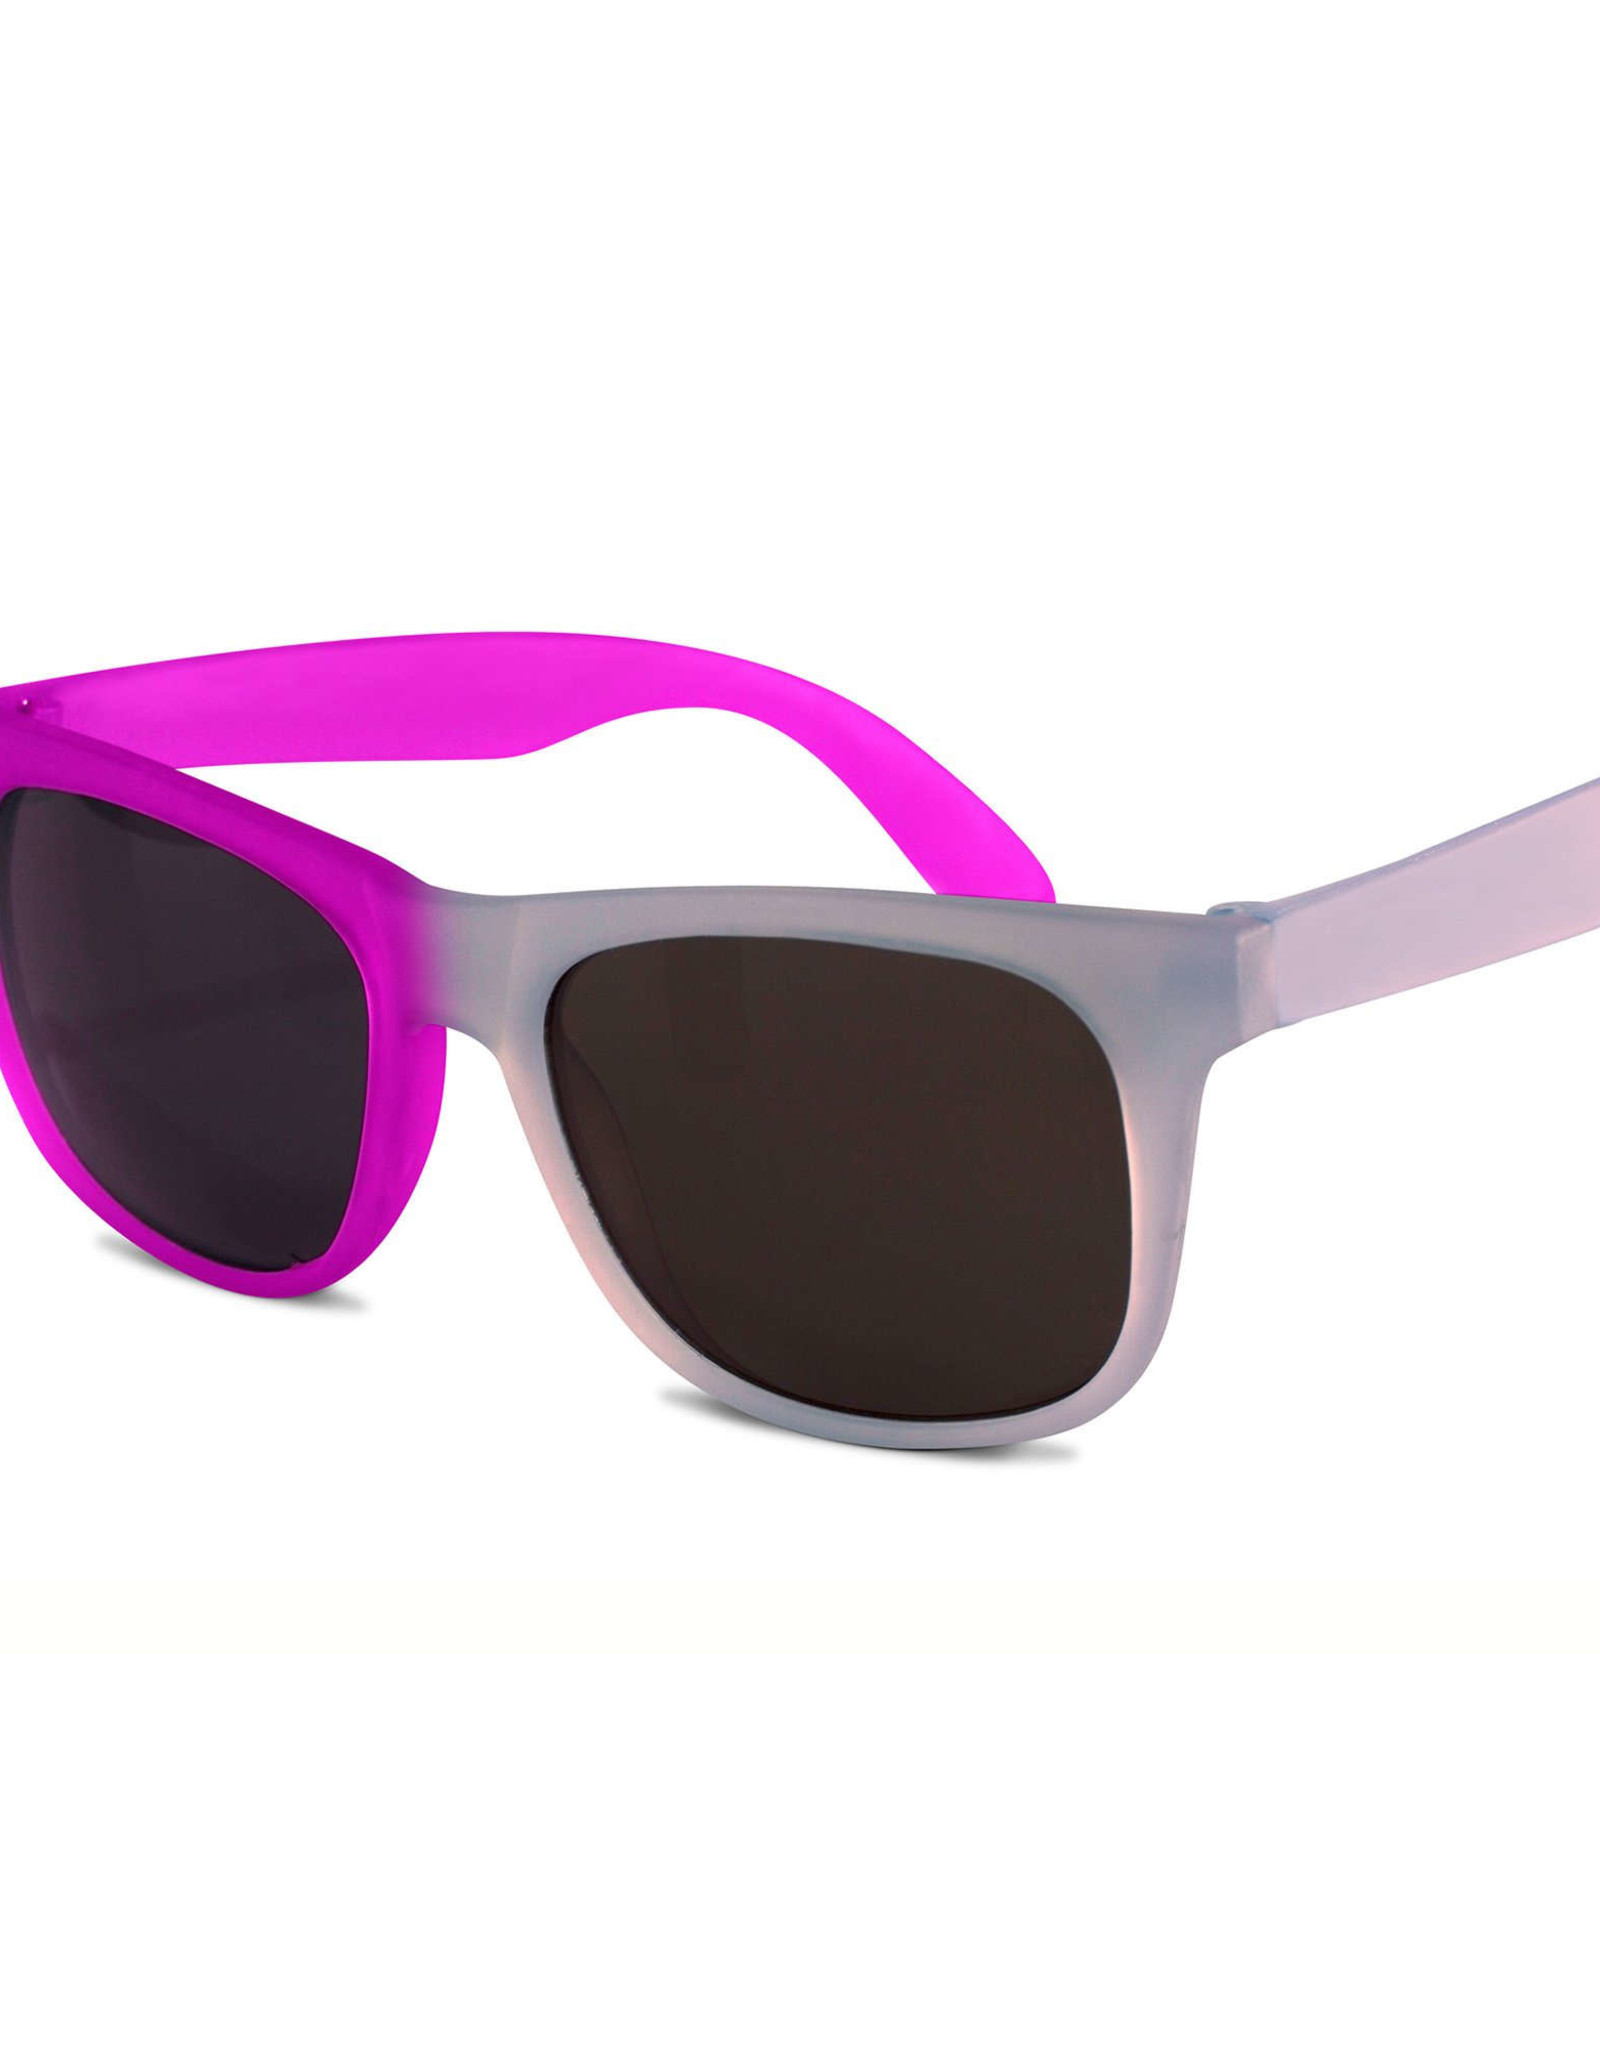 Real Shades Unbreakable Color Changing Sunglasses Blue Purple 7+